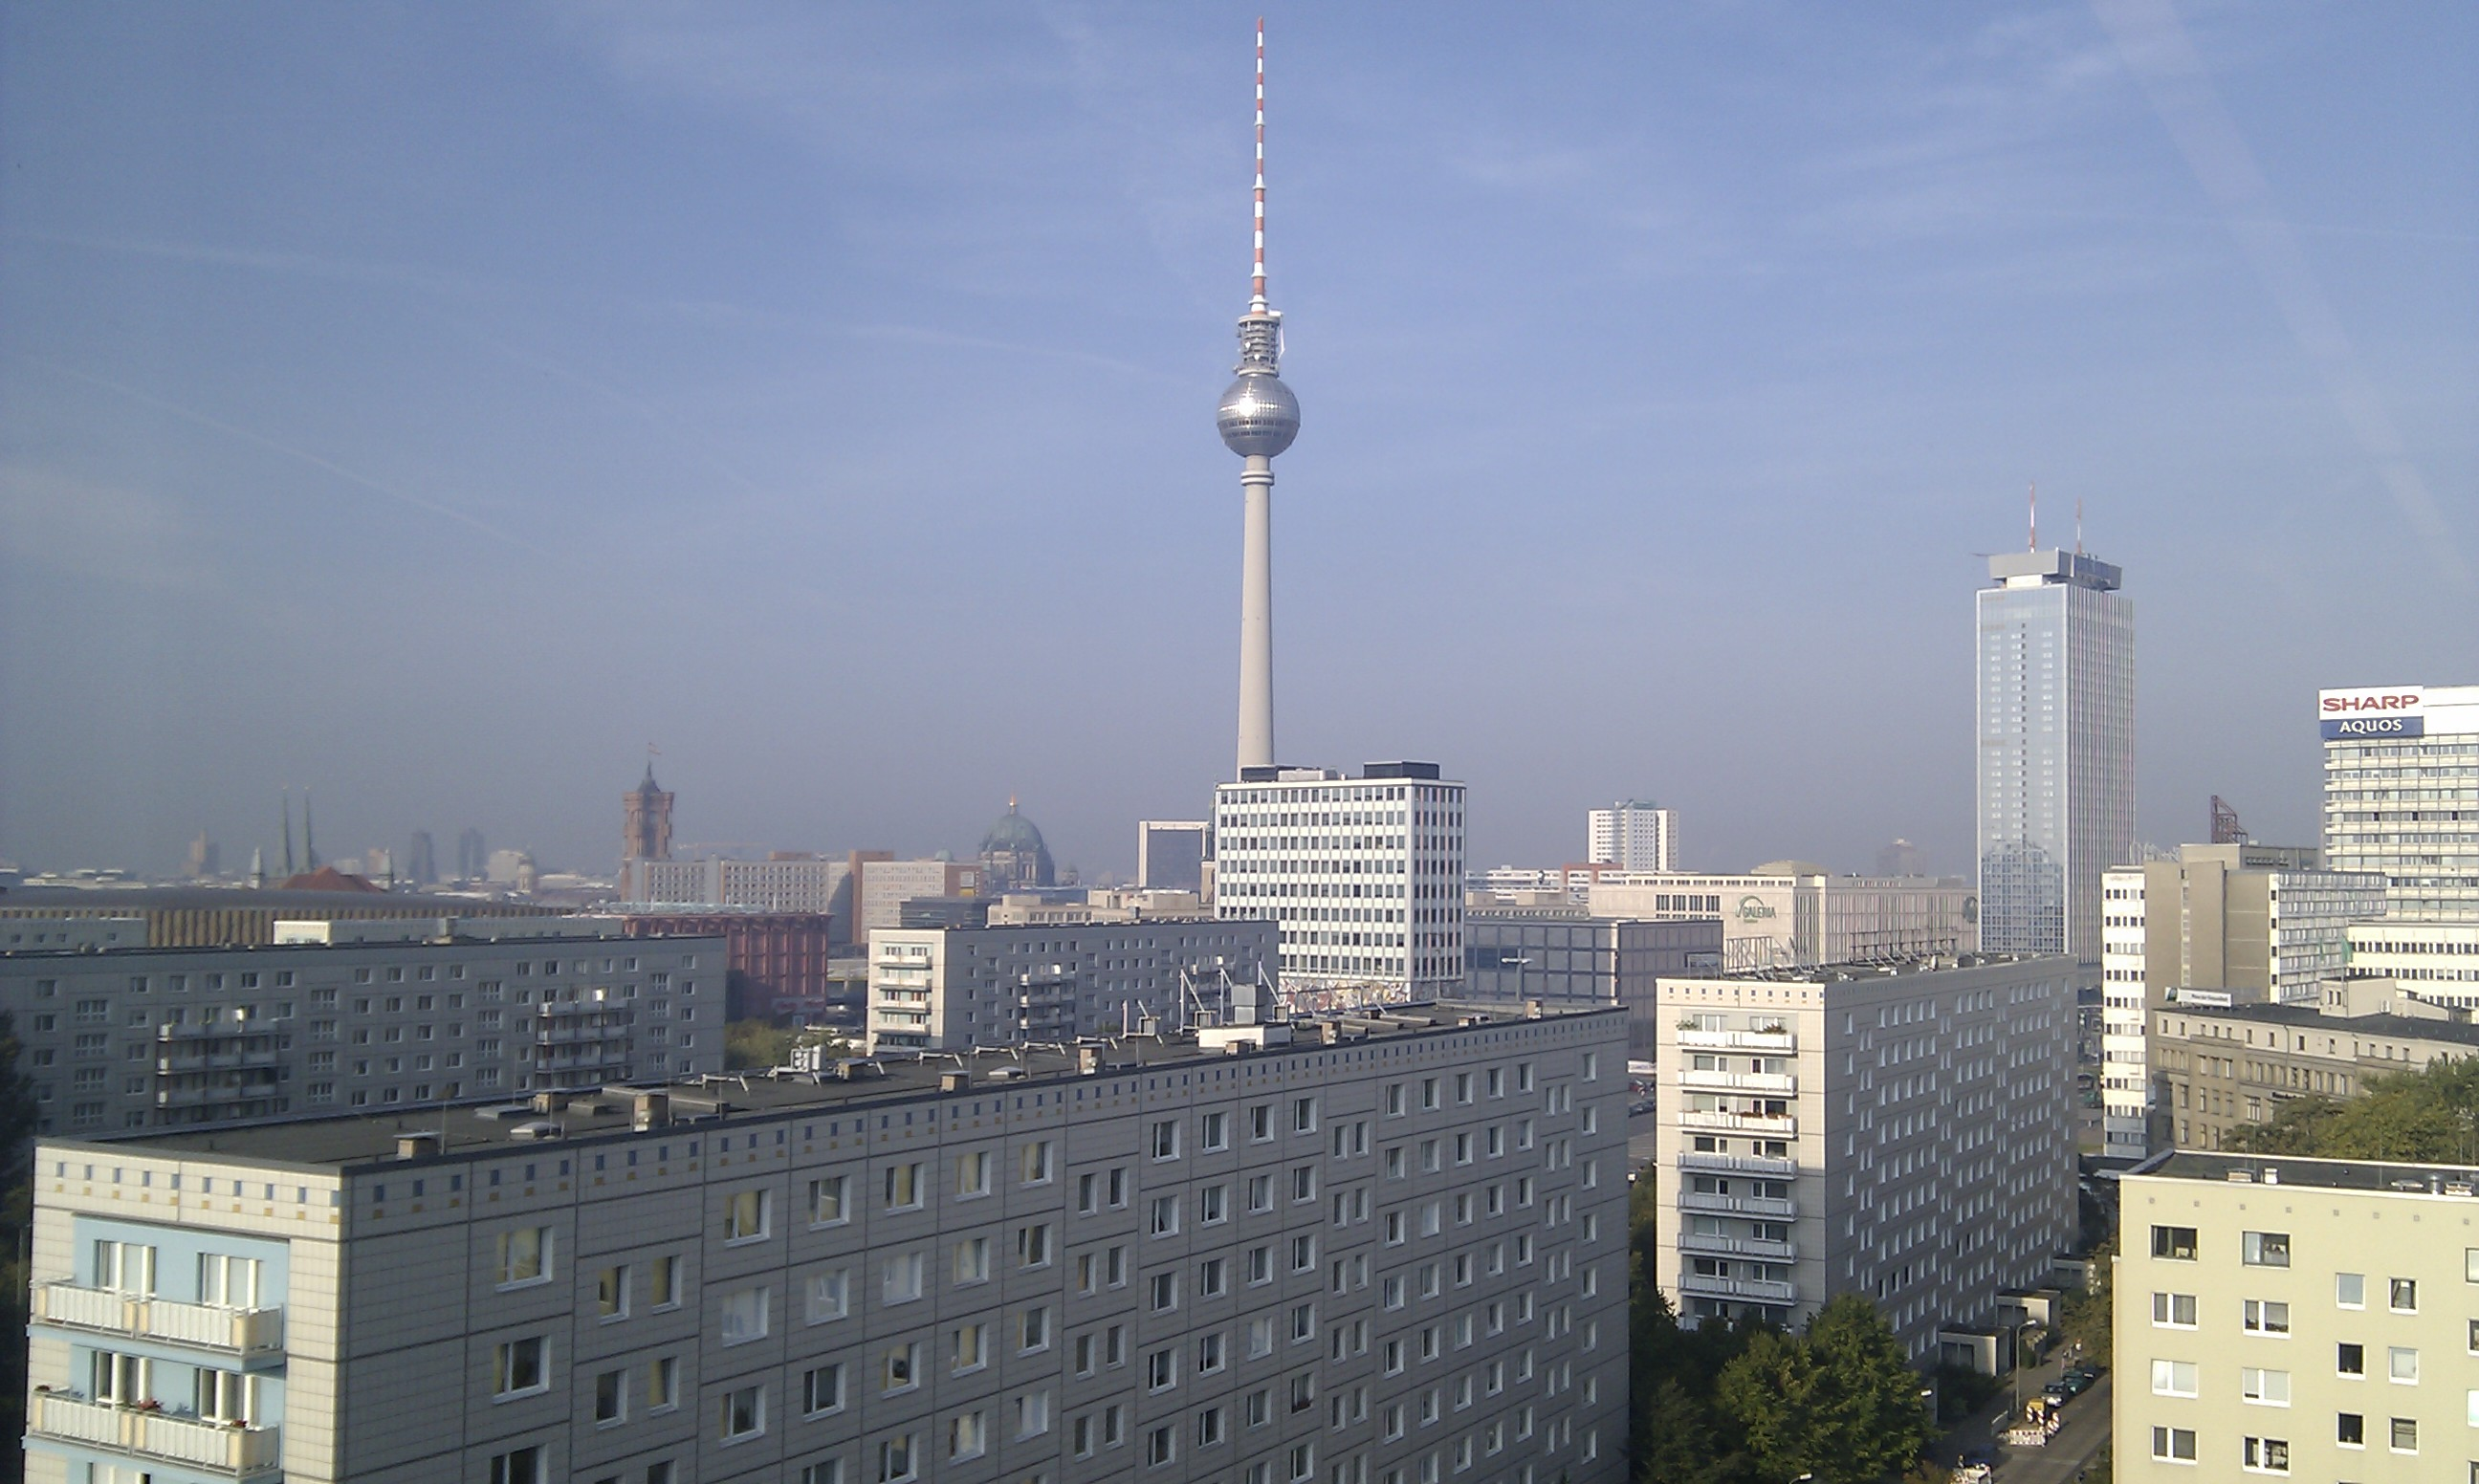 Blick aus dem Fenster gen Alex